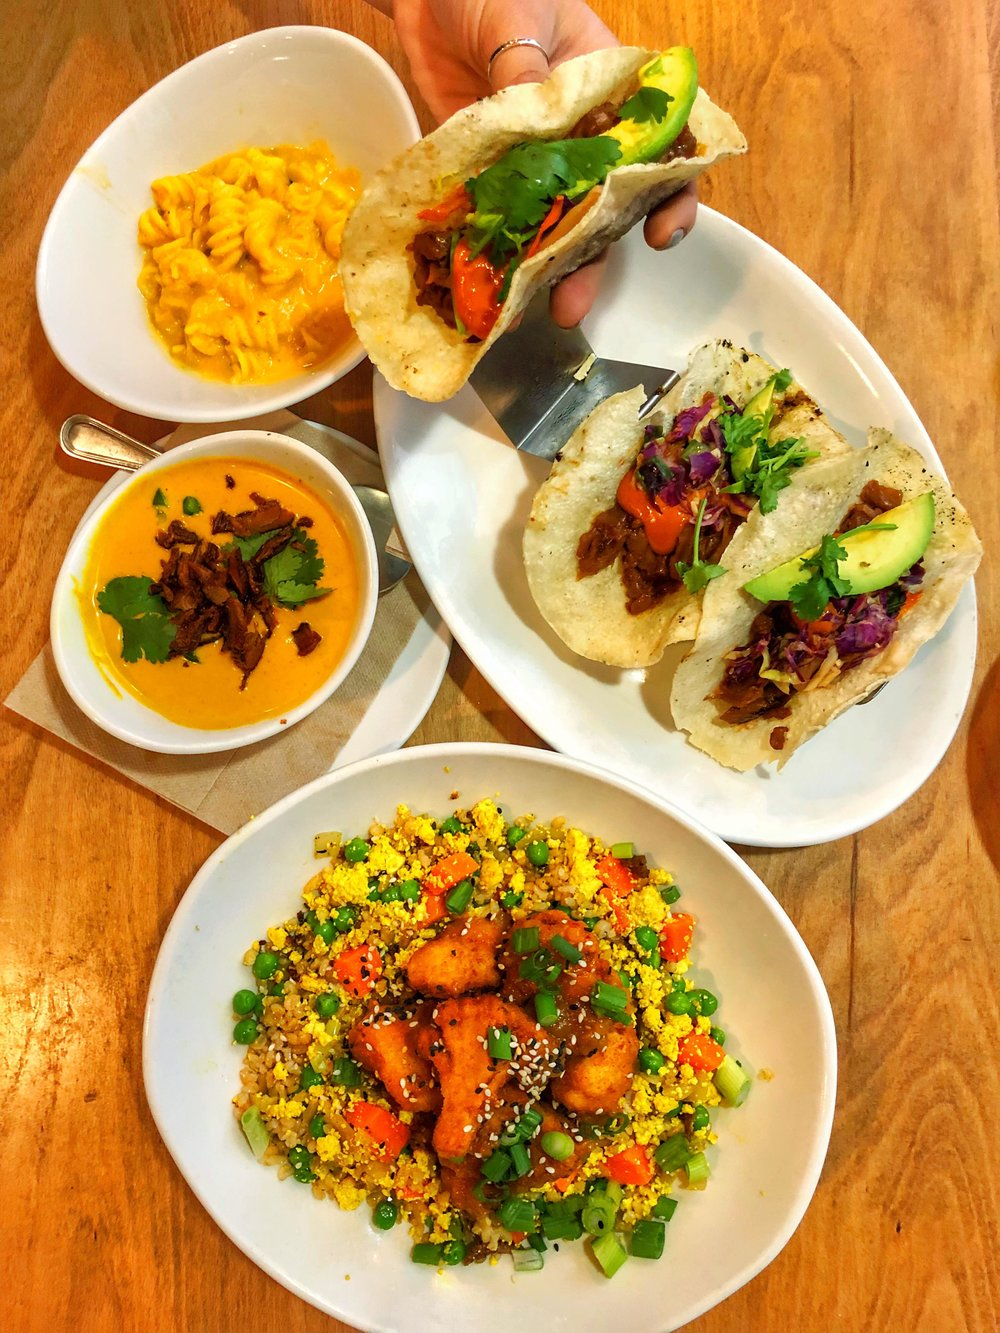 Orange chicken cauliflower, Thai Red Curry Soup, Jackfruit Taco, Mac and Cheese